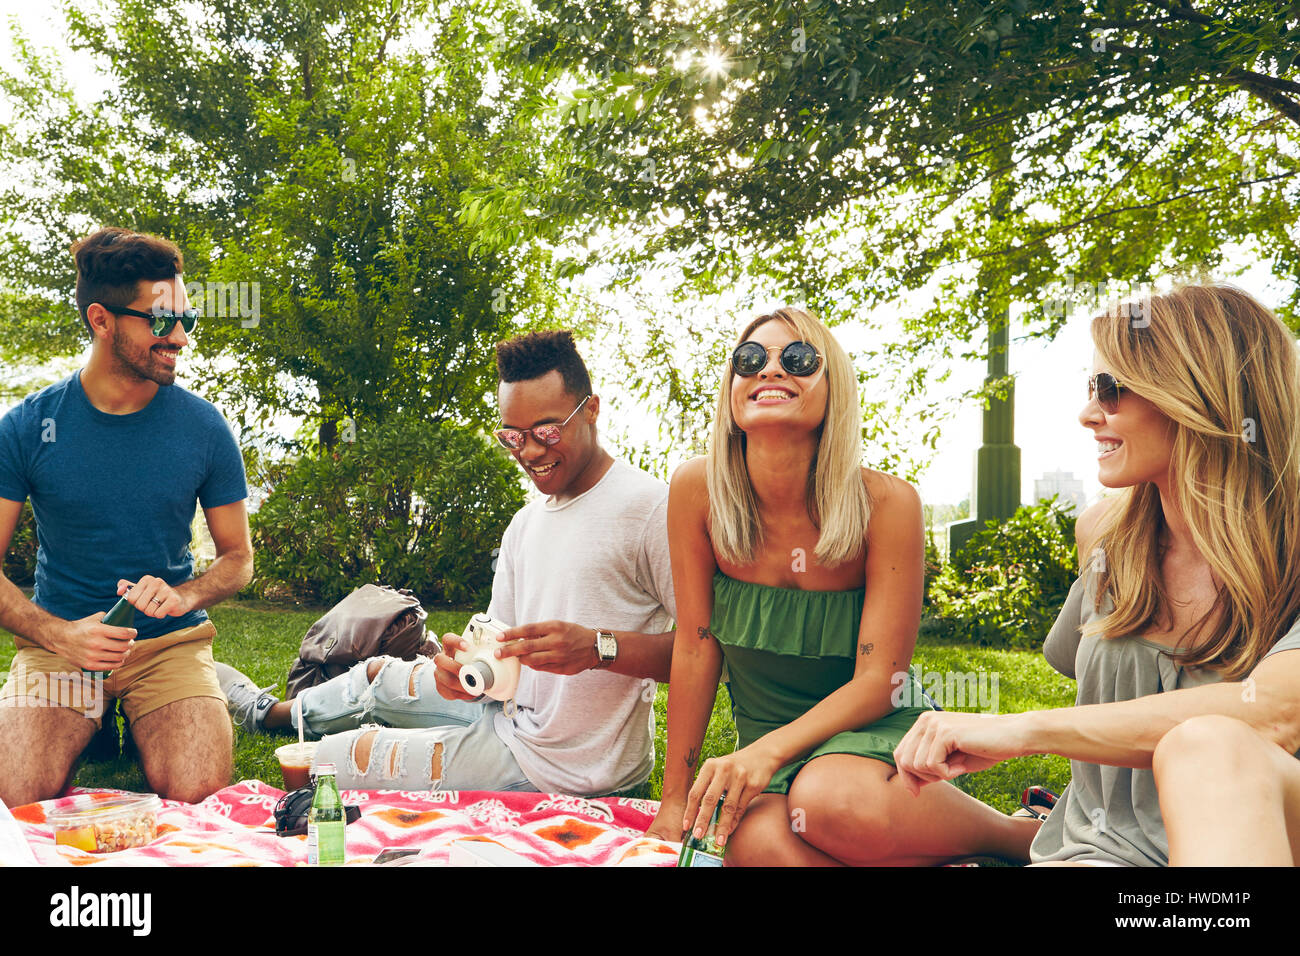 Five adult friends picnicking in park - Stock Image